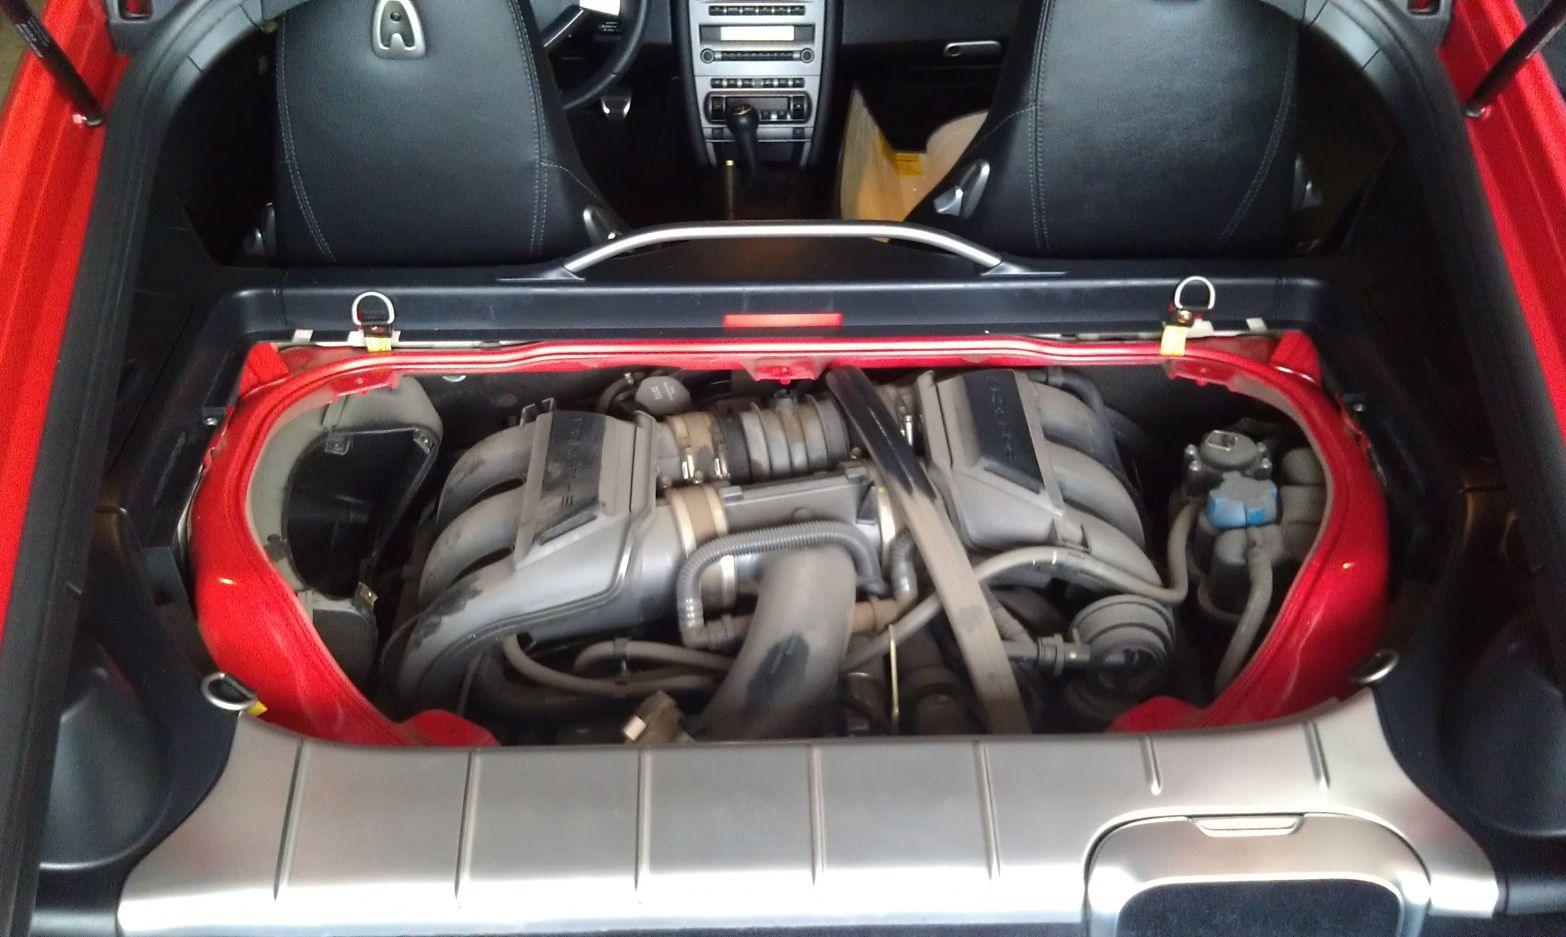 porsche cayman engine bay painted manifolds transparent engine cover installed